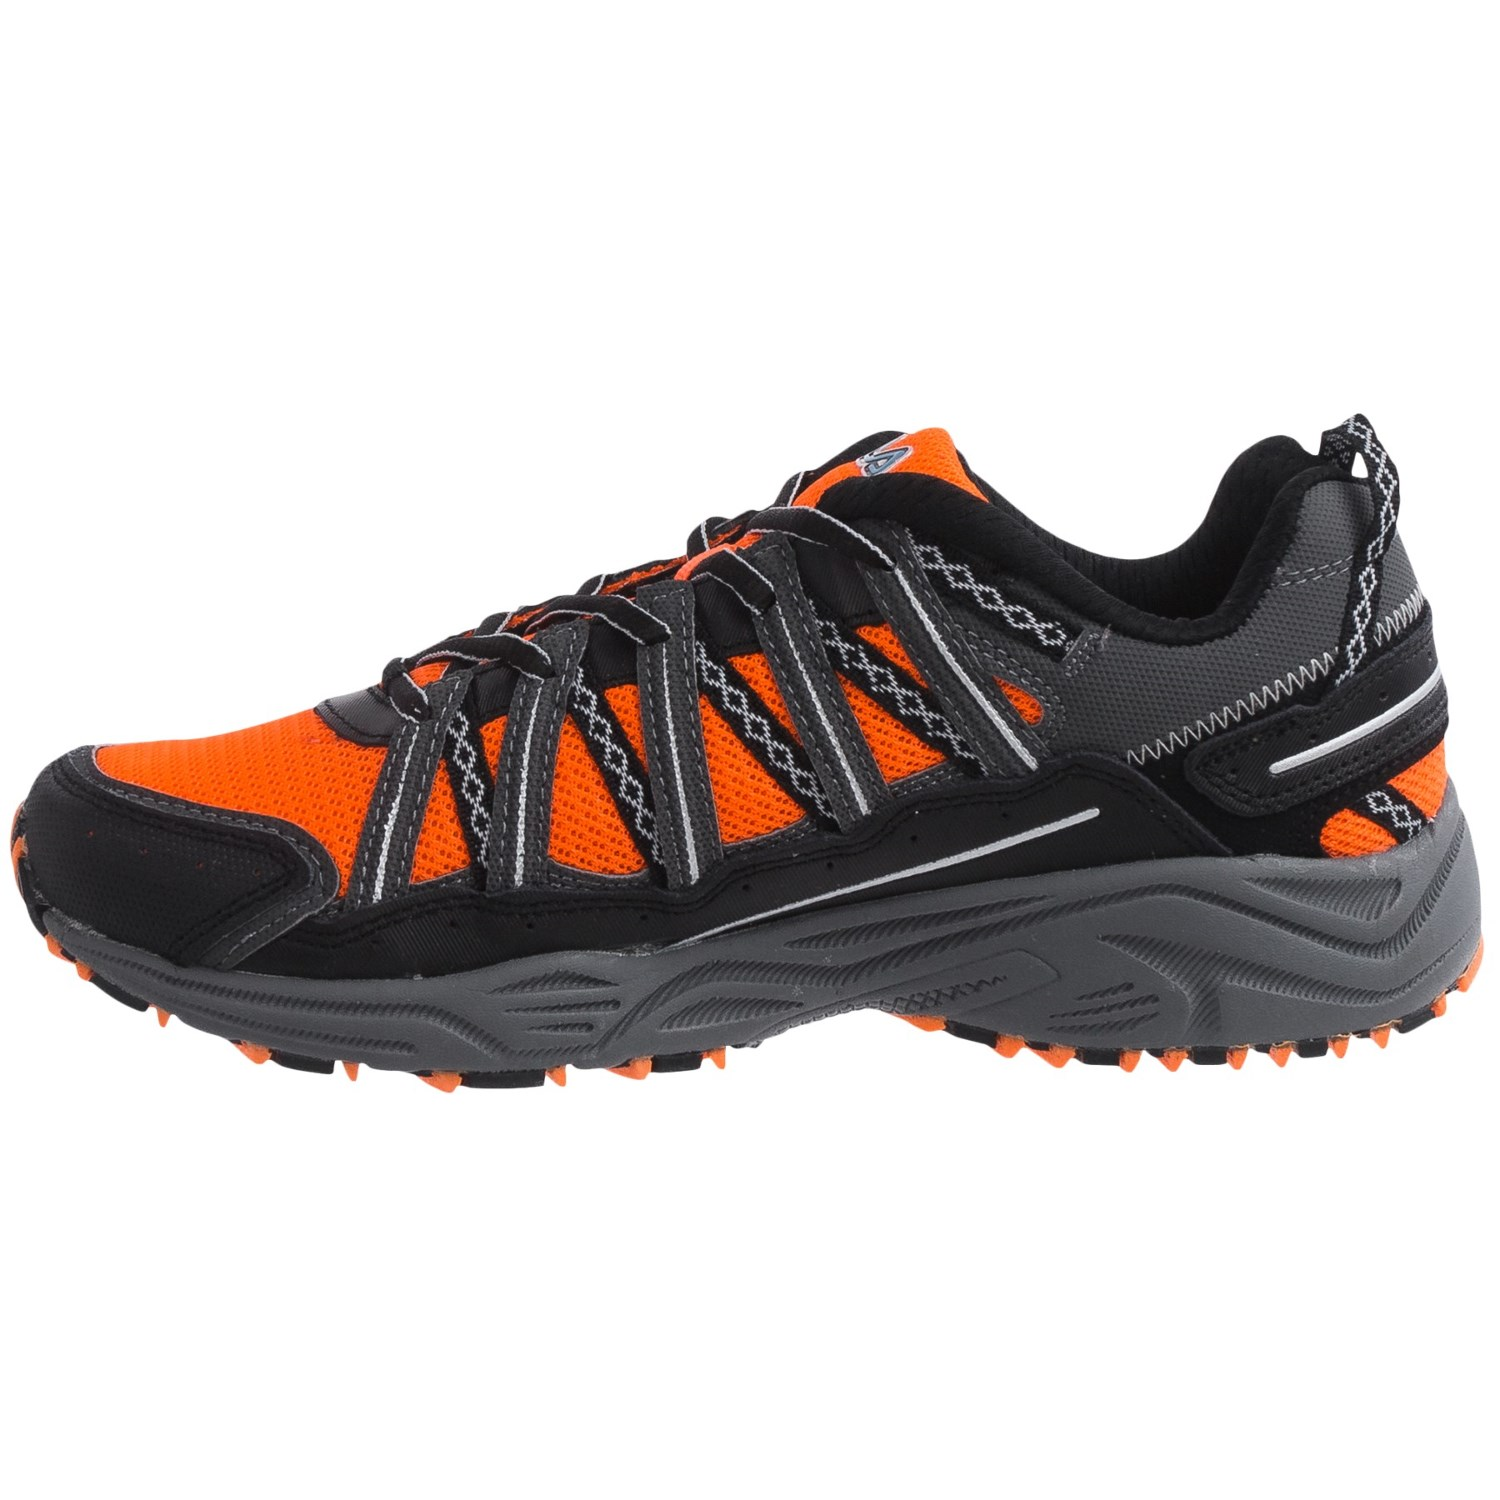 Fila Trail Shoes Review